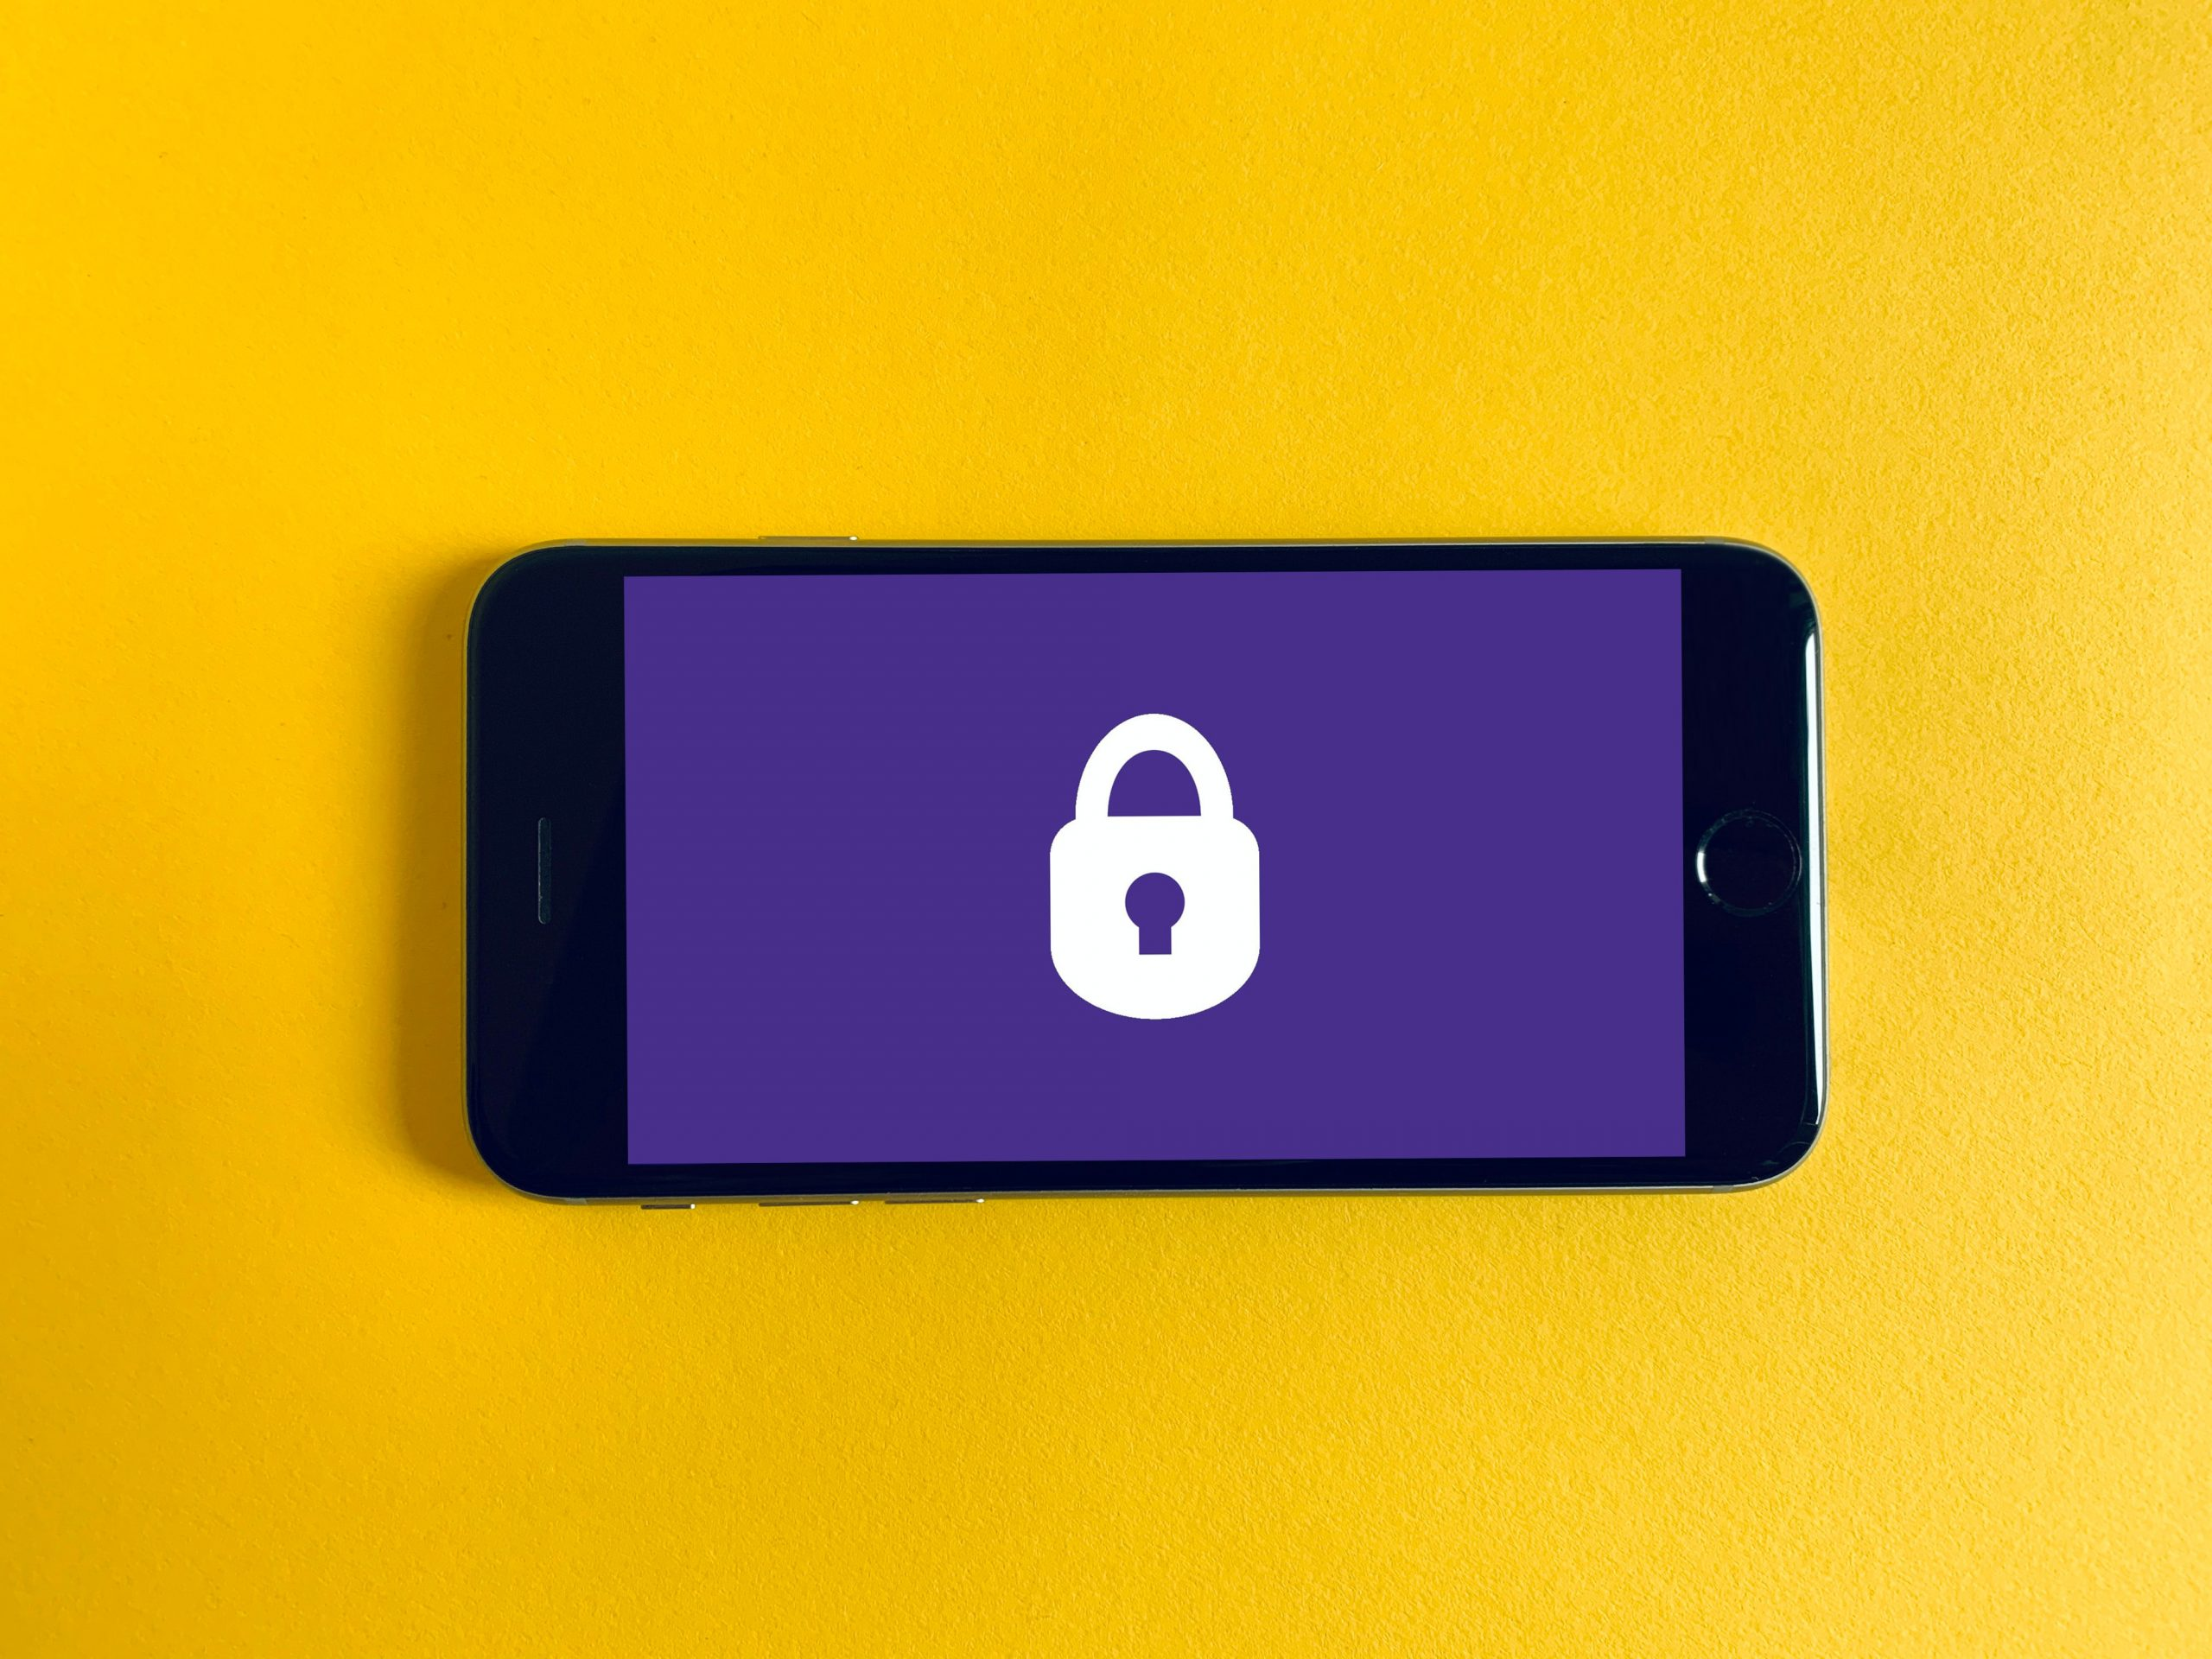 Smartphone with a picture of a padlock